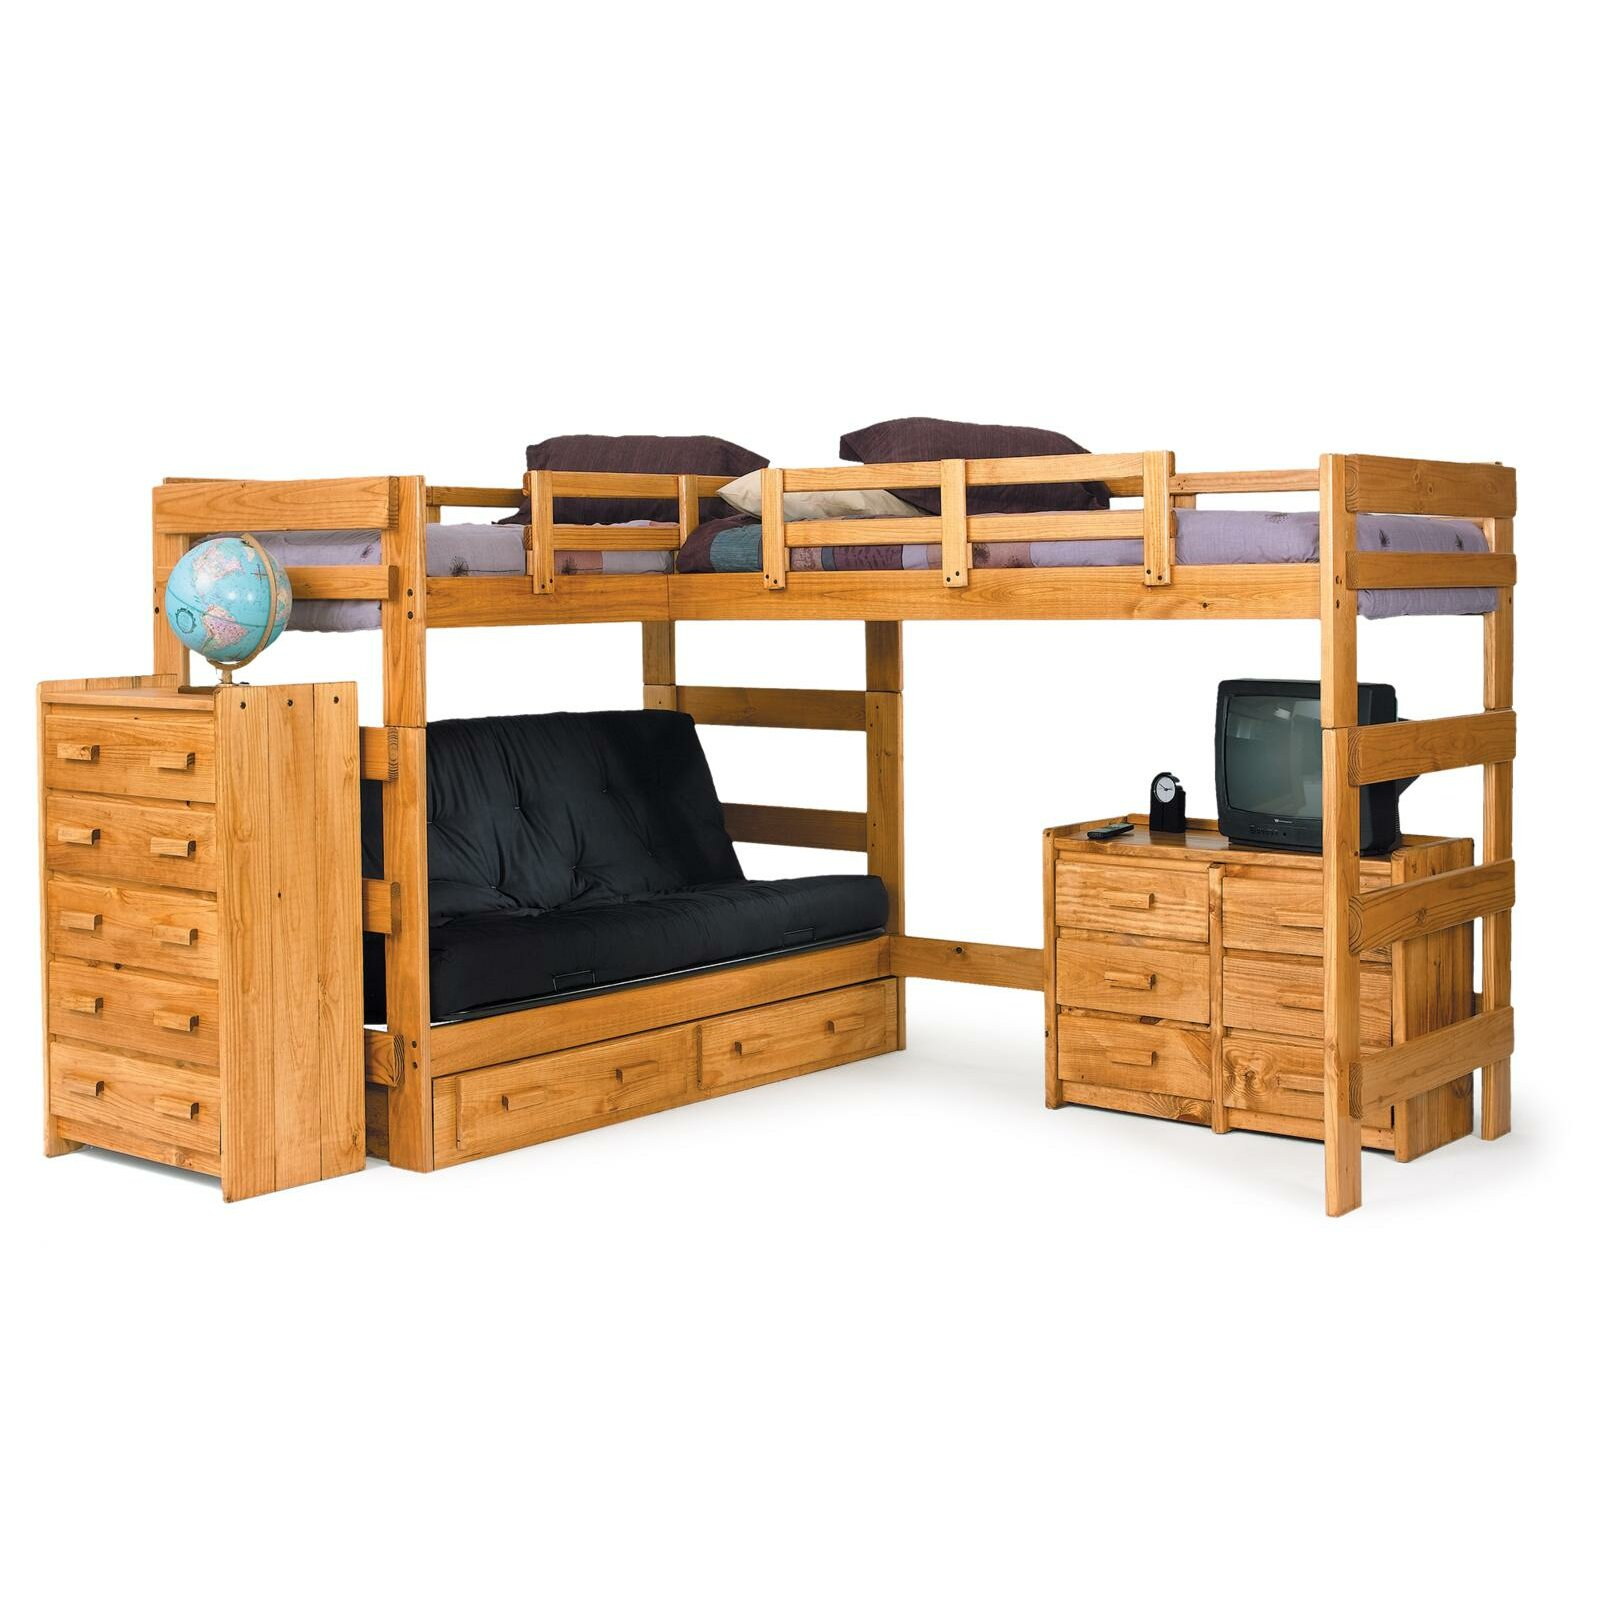 Chelsea home l shaped bunk bed customizable bedroom set Futon for kids room